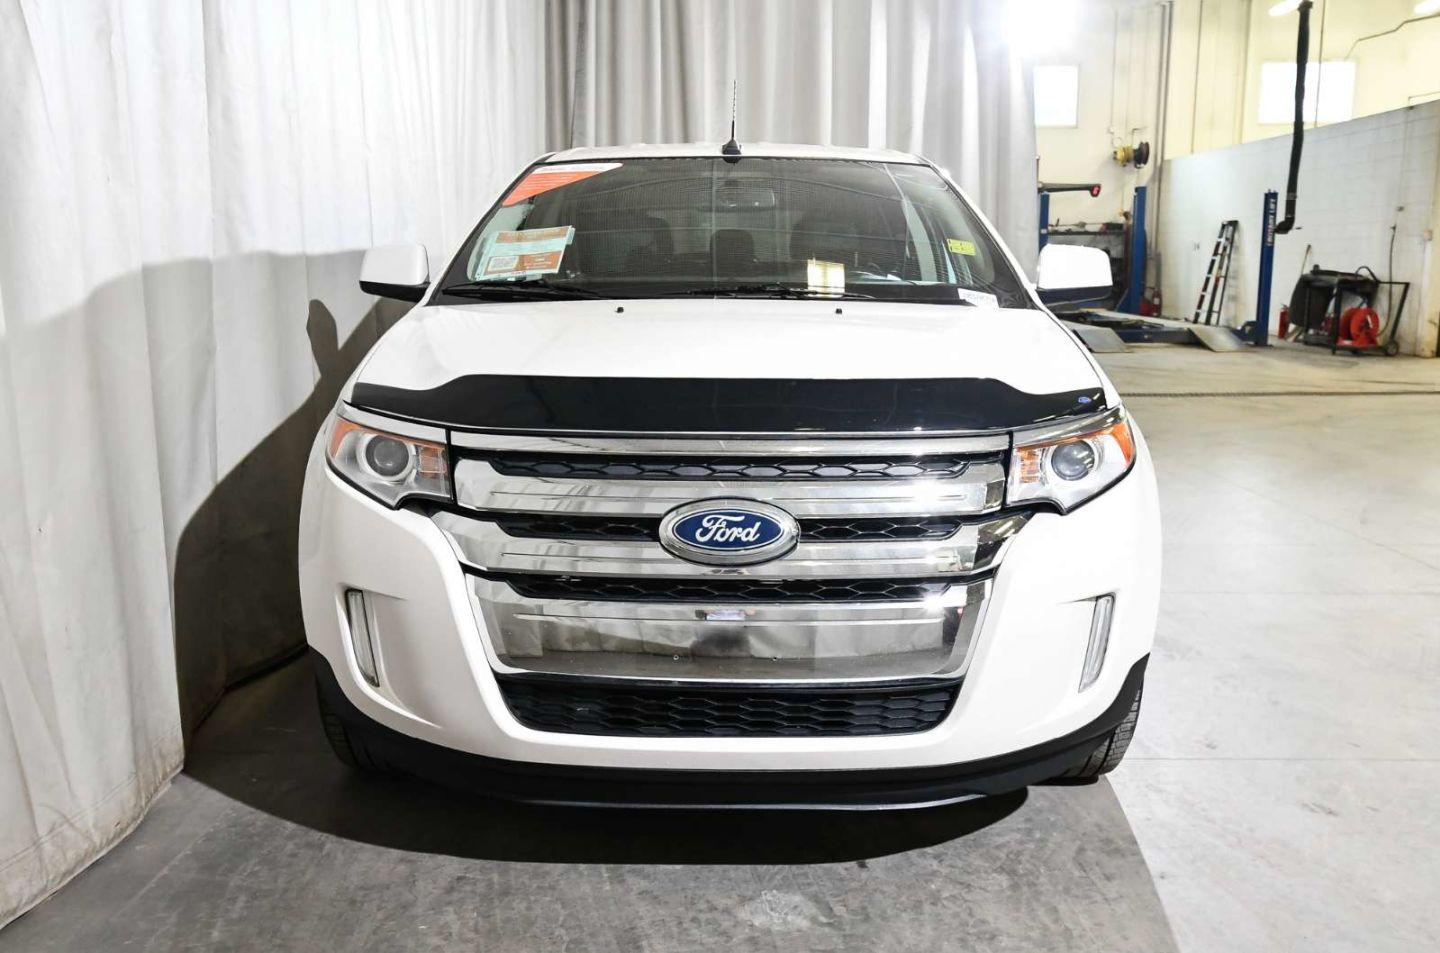 2011 Ford Edge SEL for sale in Red Deer, Alberta